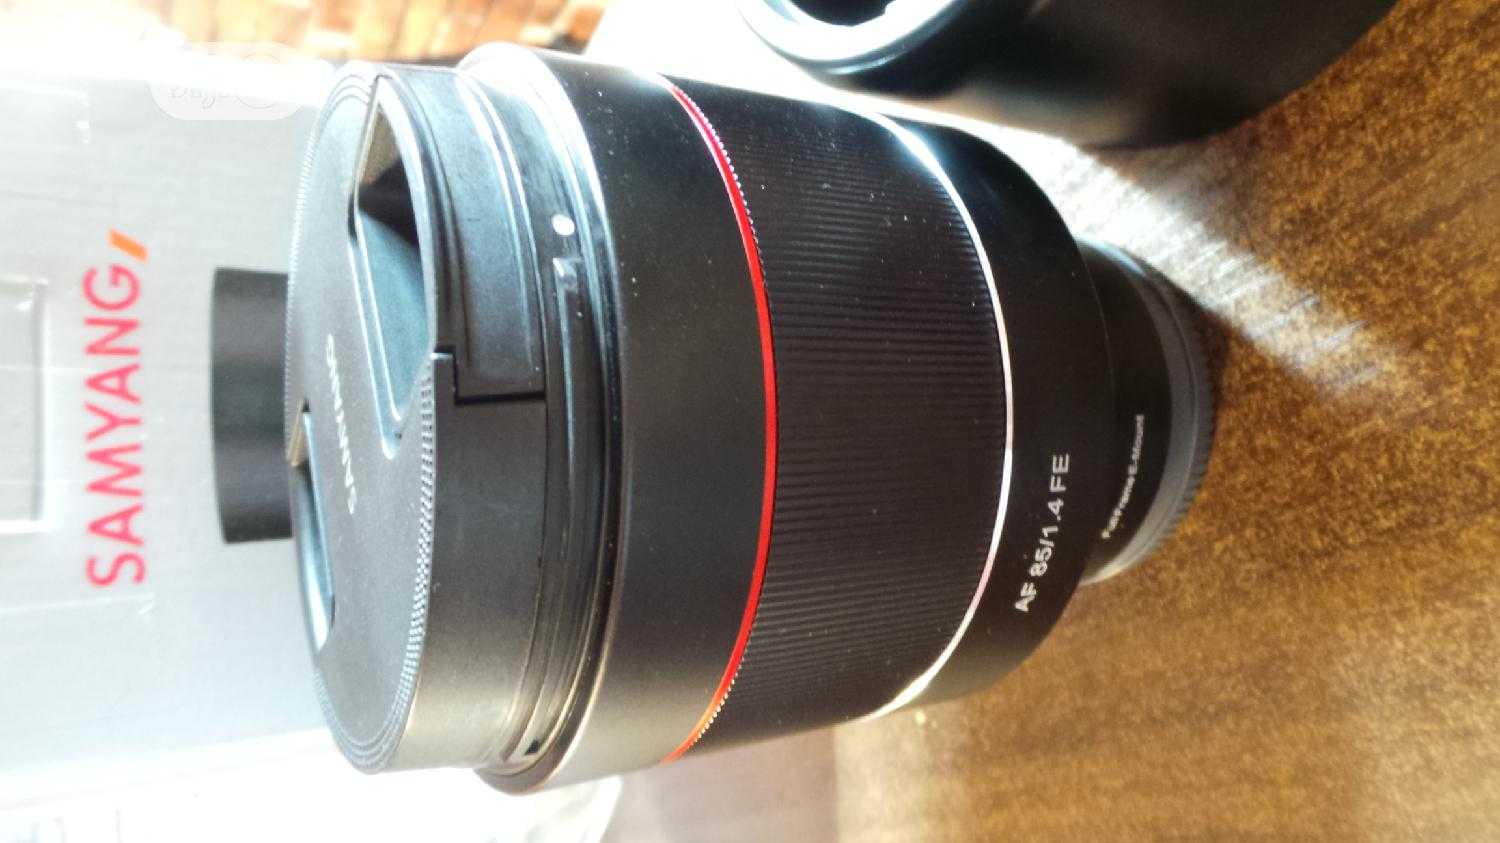 Samyang Lens Af 85mm F1.4 Fe for Sony Cameras | Accessories & Supplies for Electronics for sale in Alimosho, Lagos State, Nigeria